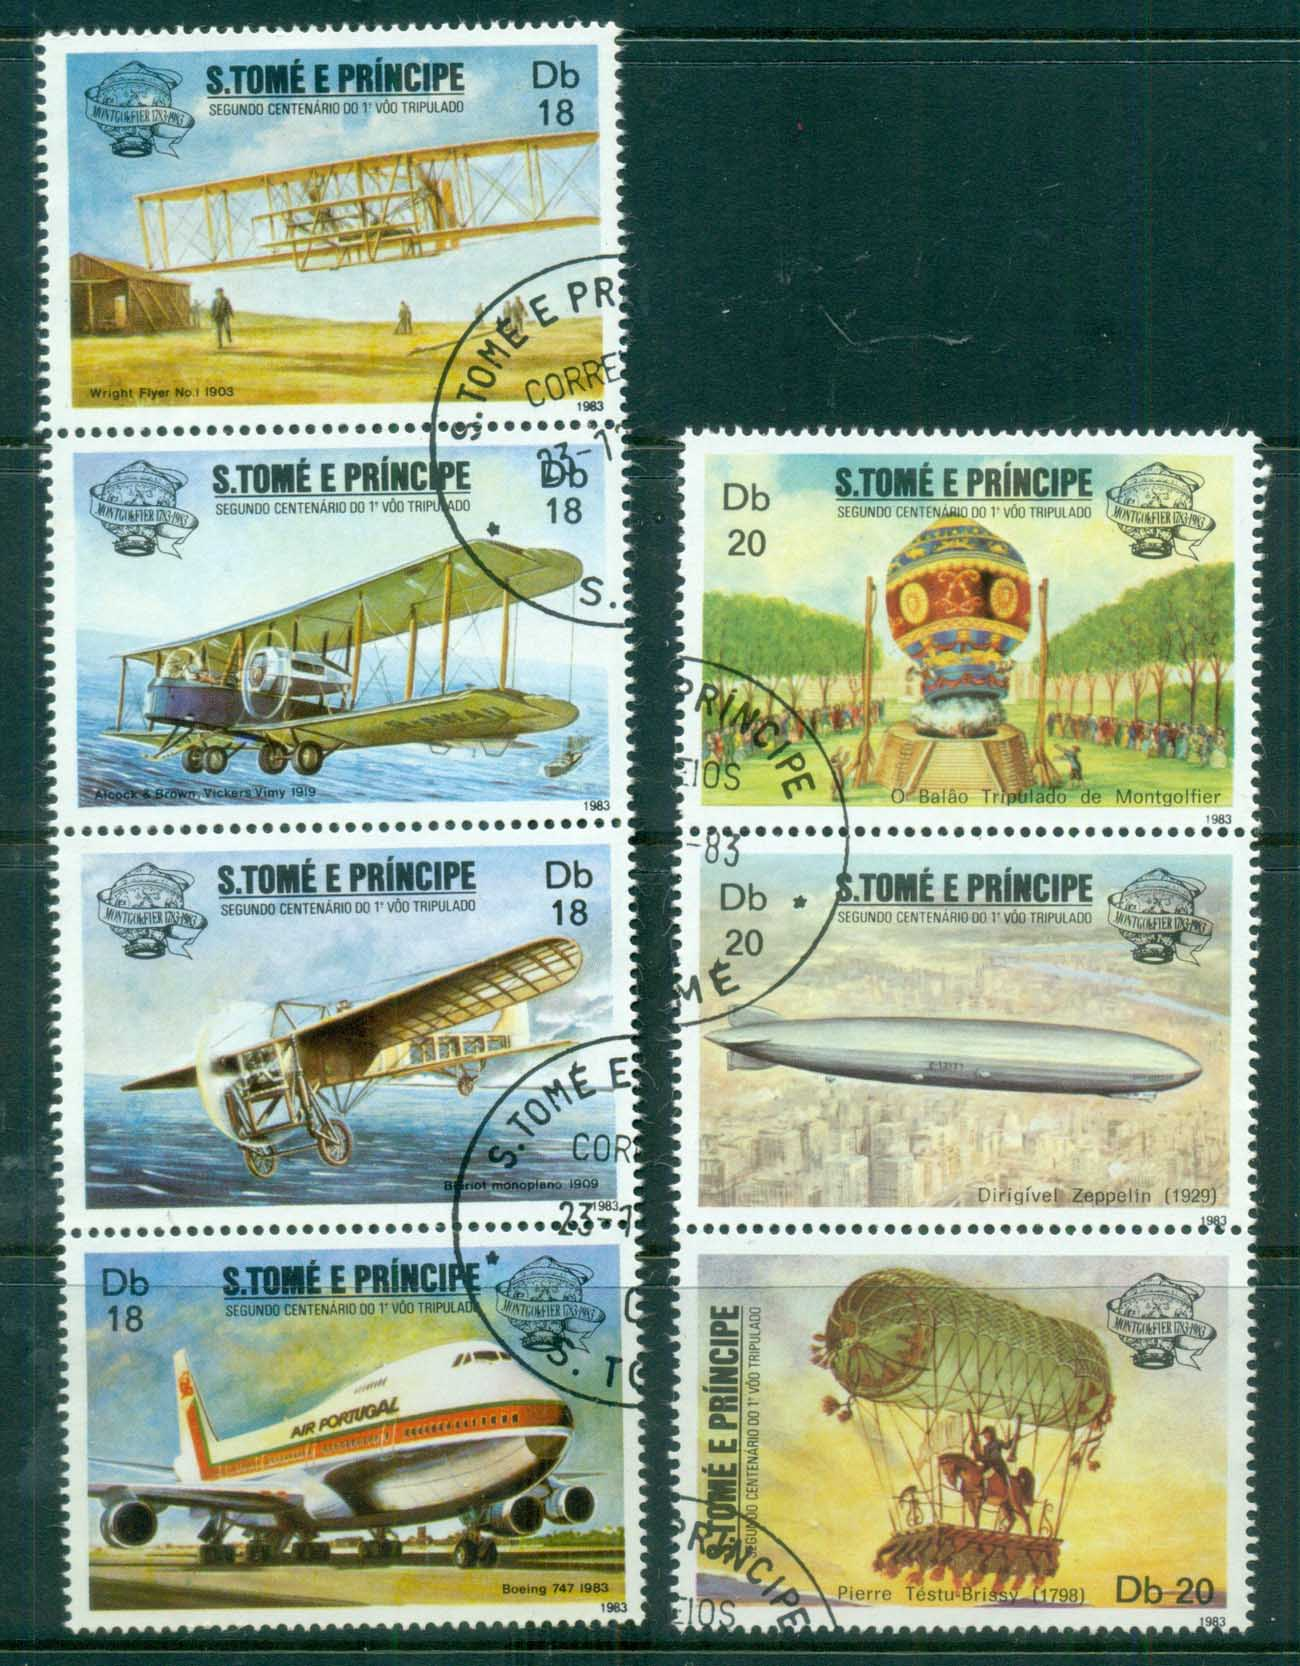 Sao Tome et Principe 1983 Manned Flight Bicentenary Str 3,4 CTO